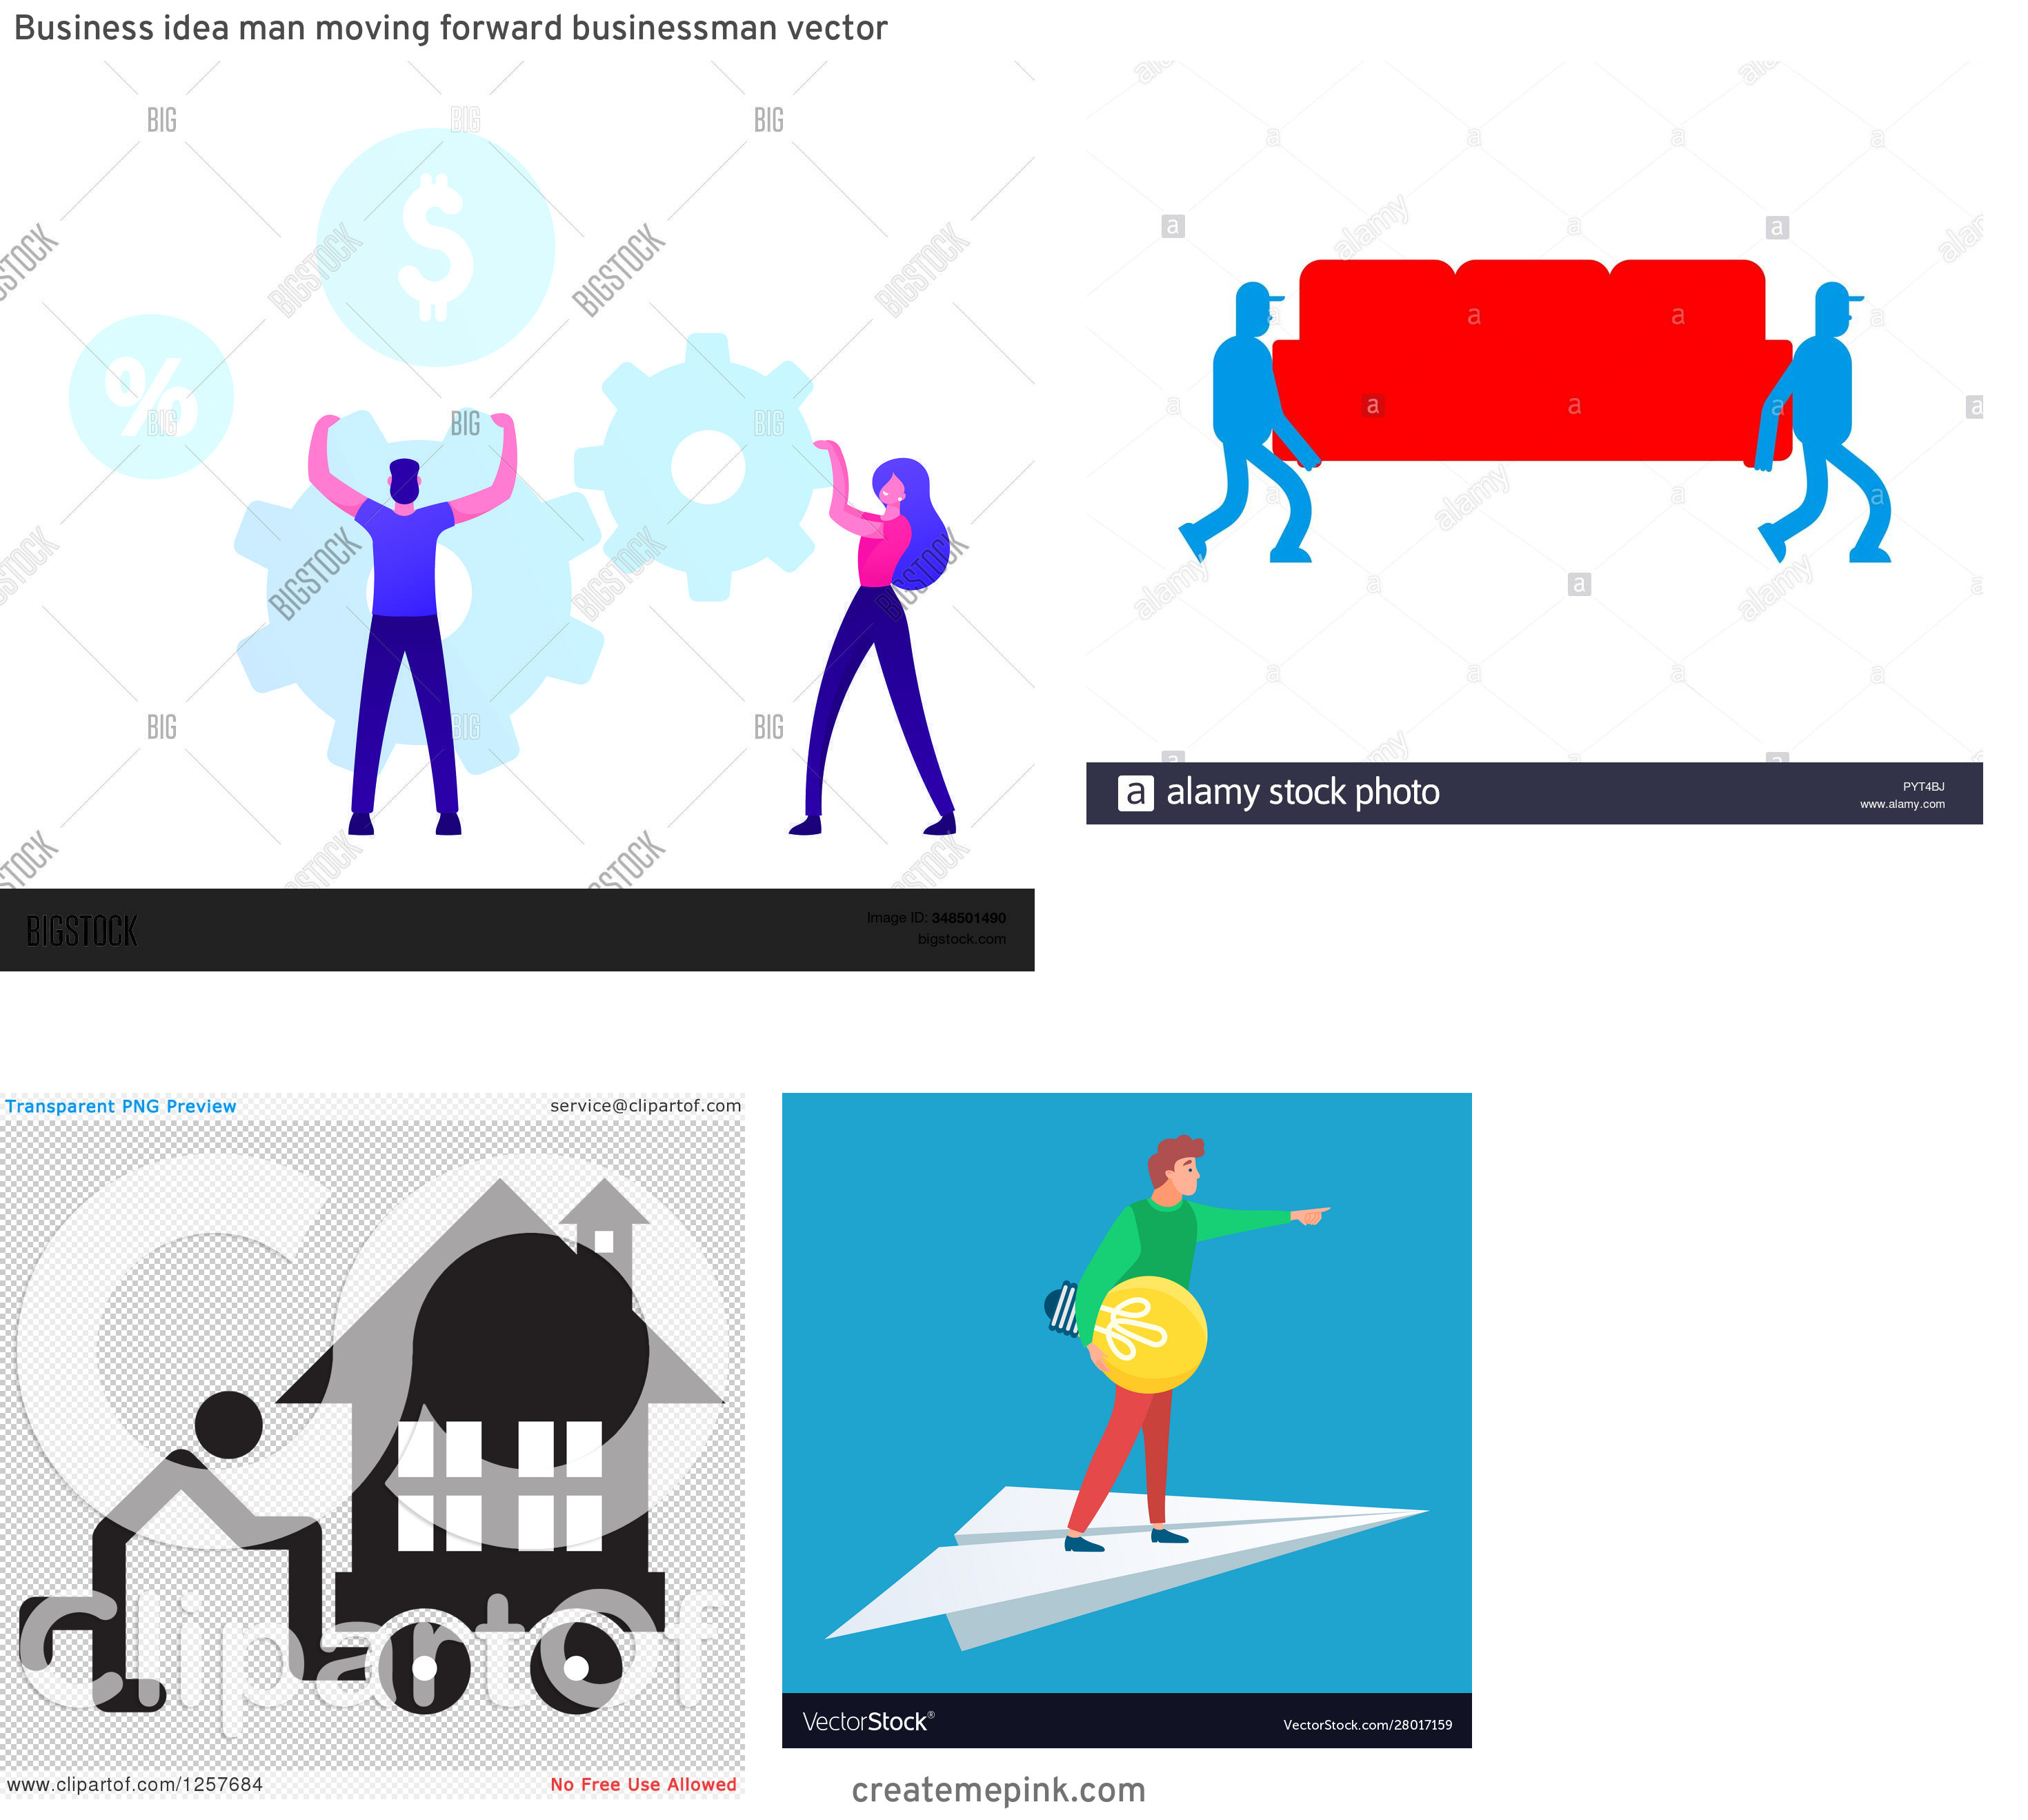 Vector Person Moving: Business Idea Man Moving Forward Businessman Vector